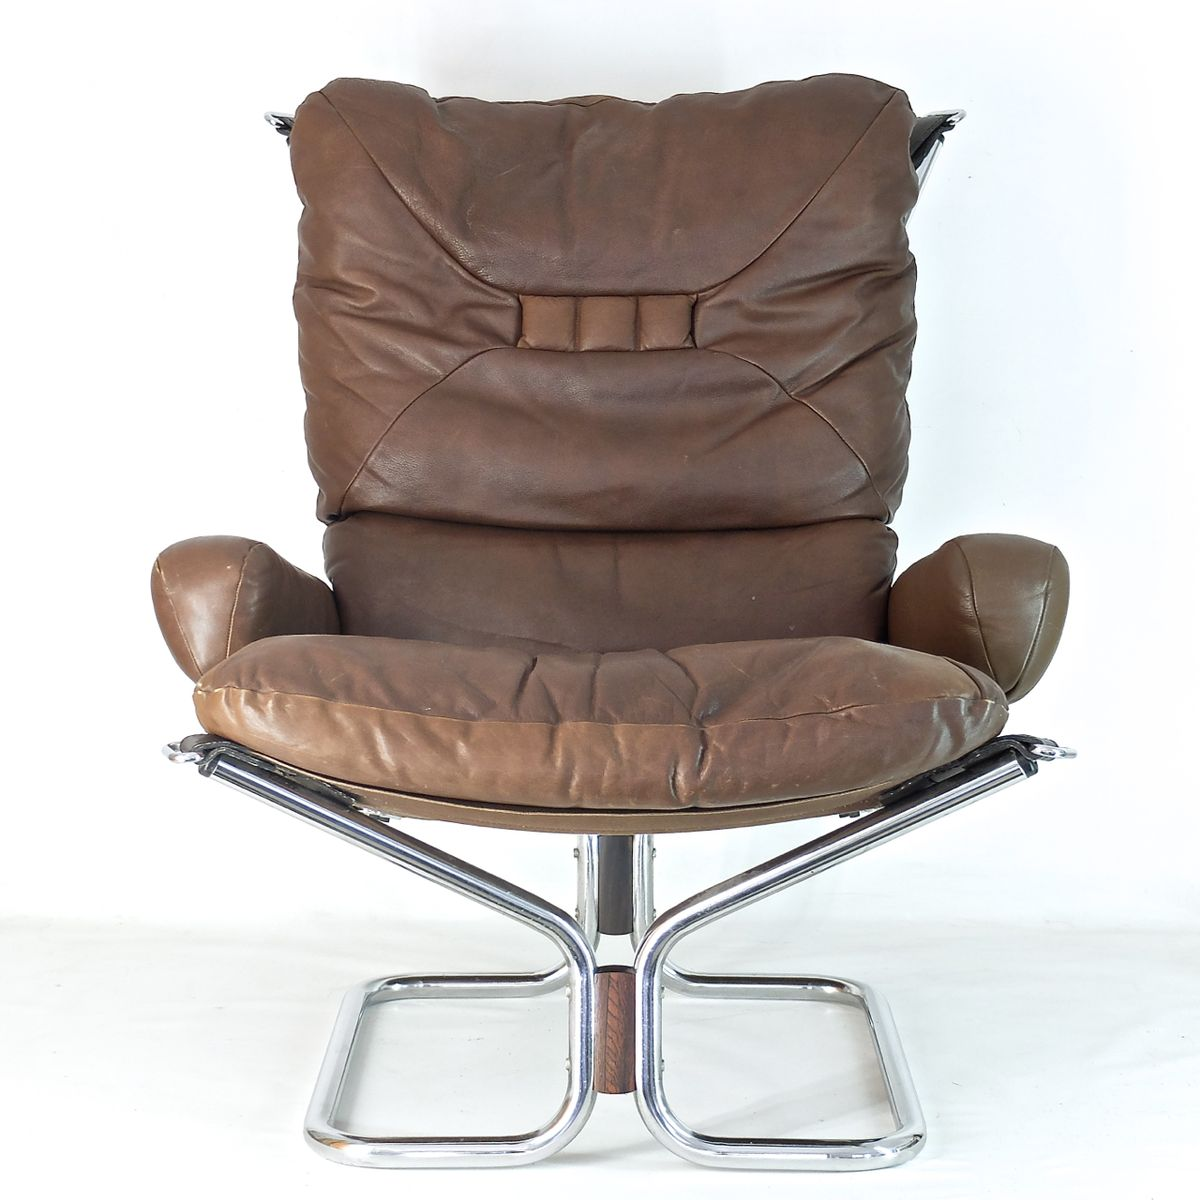 Lounge Chair With Ottoman Norwegian Rosewood And Leather Lounge Chair With Ottoman